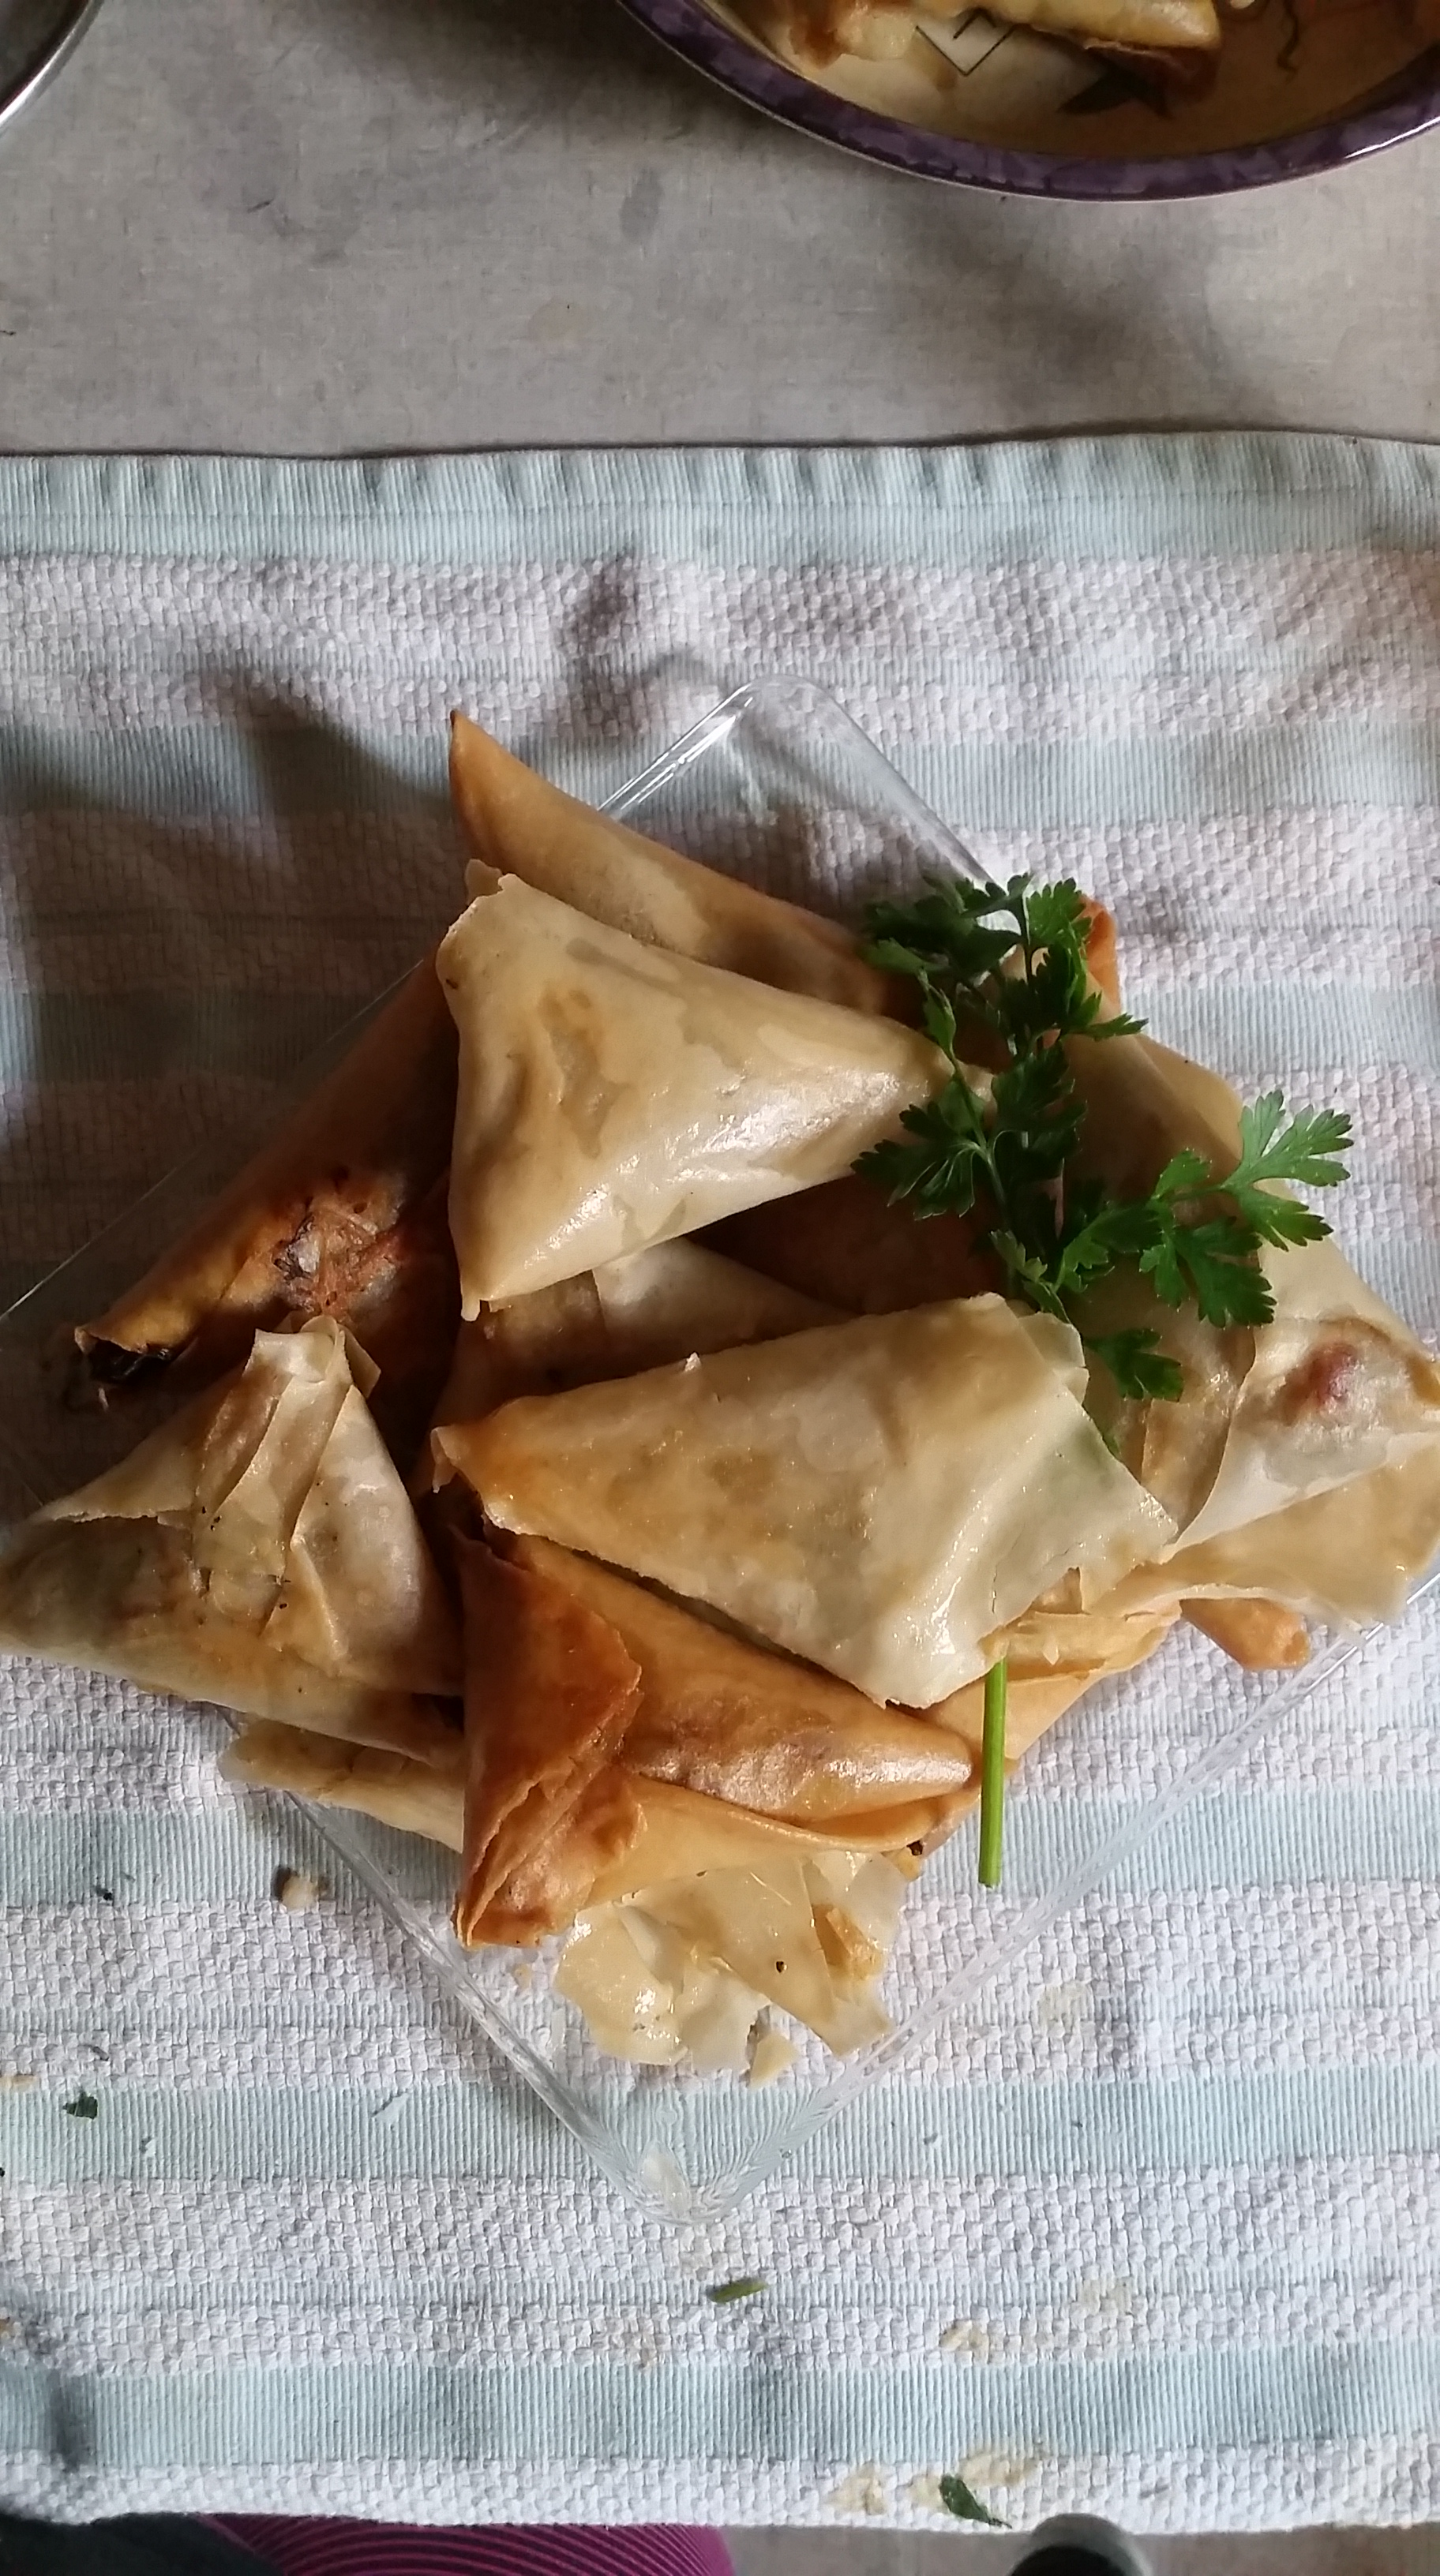 African samosas interdependence in community farm and hearth download the recipe pdf here 20140911183614 forumfinder Gallery